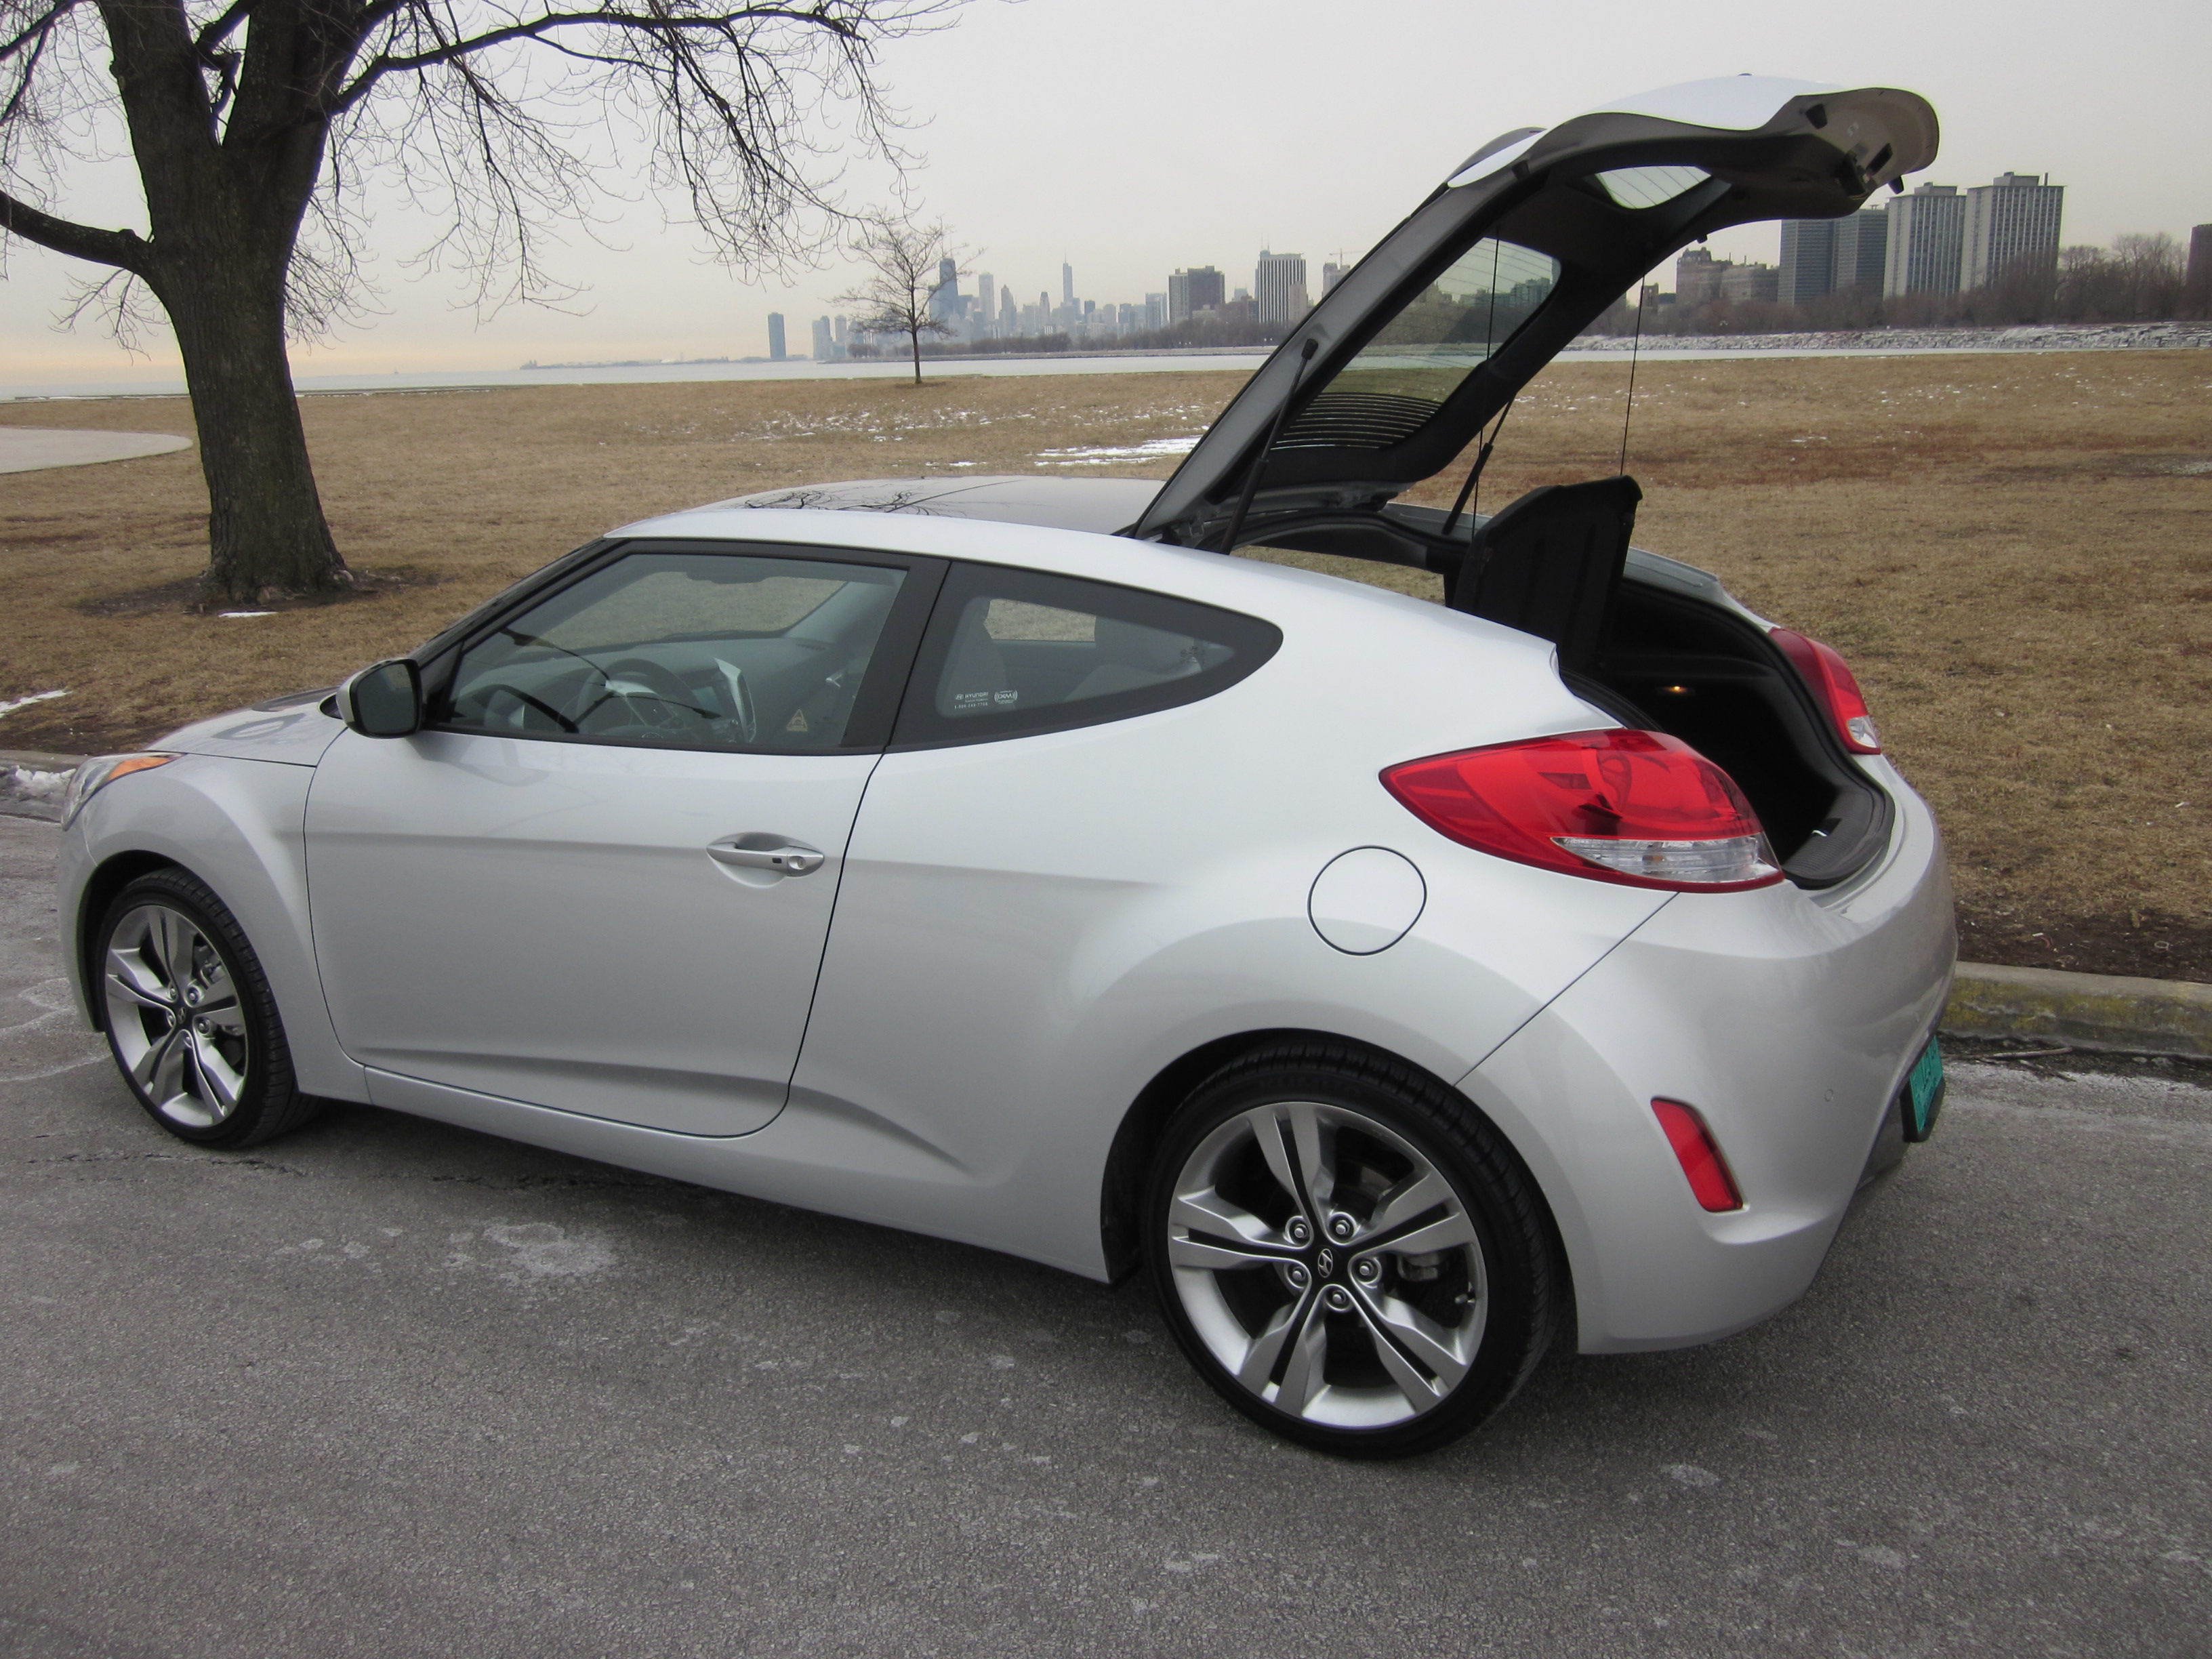 2012 Hyundai Veloster Ride And Review By Larry Nutson